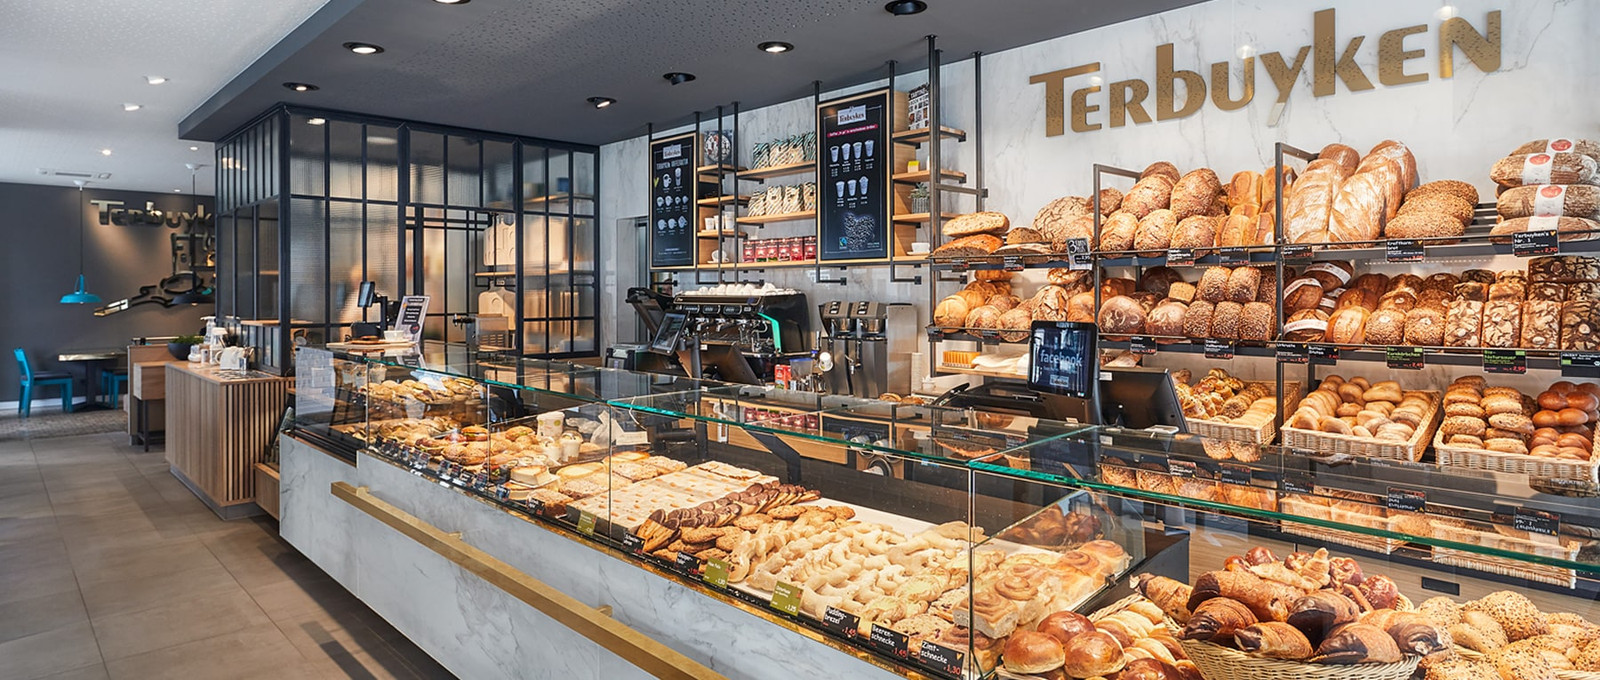 Terbuyken bakery – Unique, modern and stylish